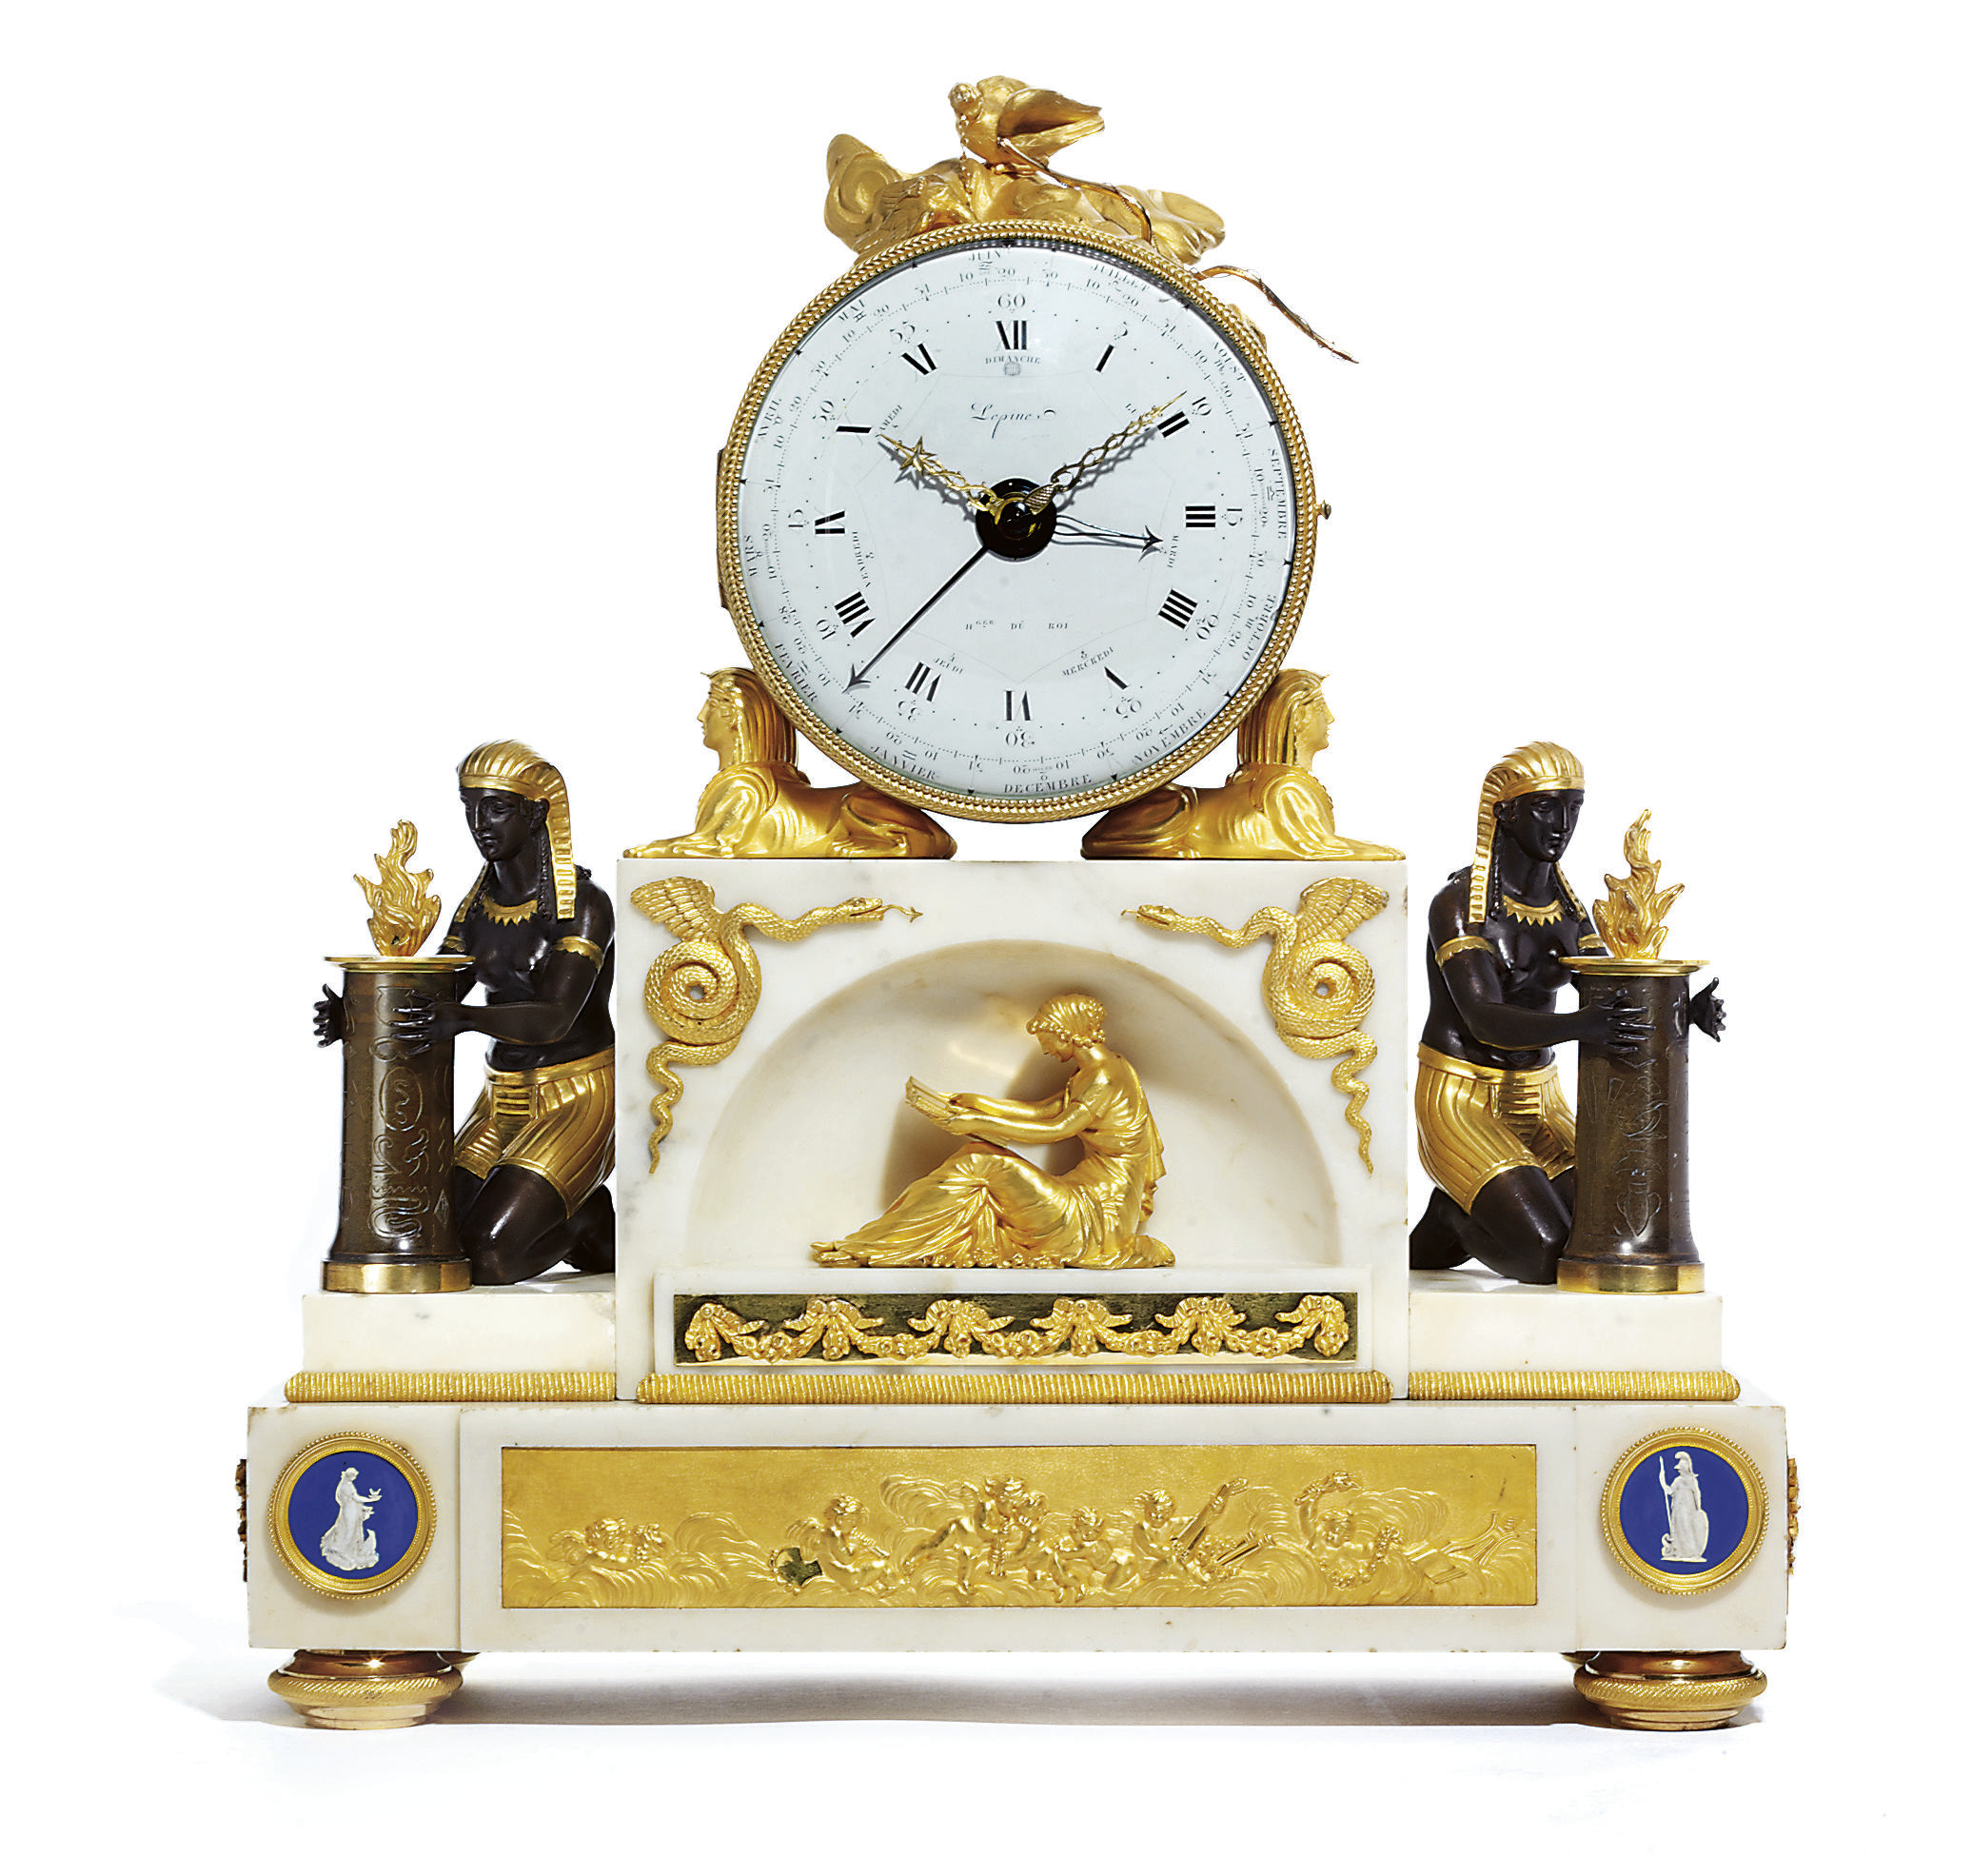 A LOUIS XVI LARGE ORMOLU, PATINATED BRONZE AND WHITE MARBLE STRIKING MANTEL CLOCK